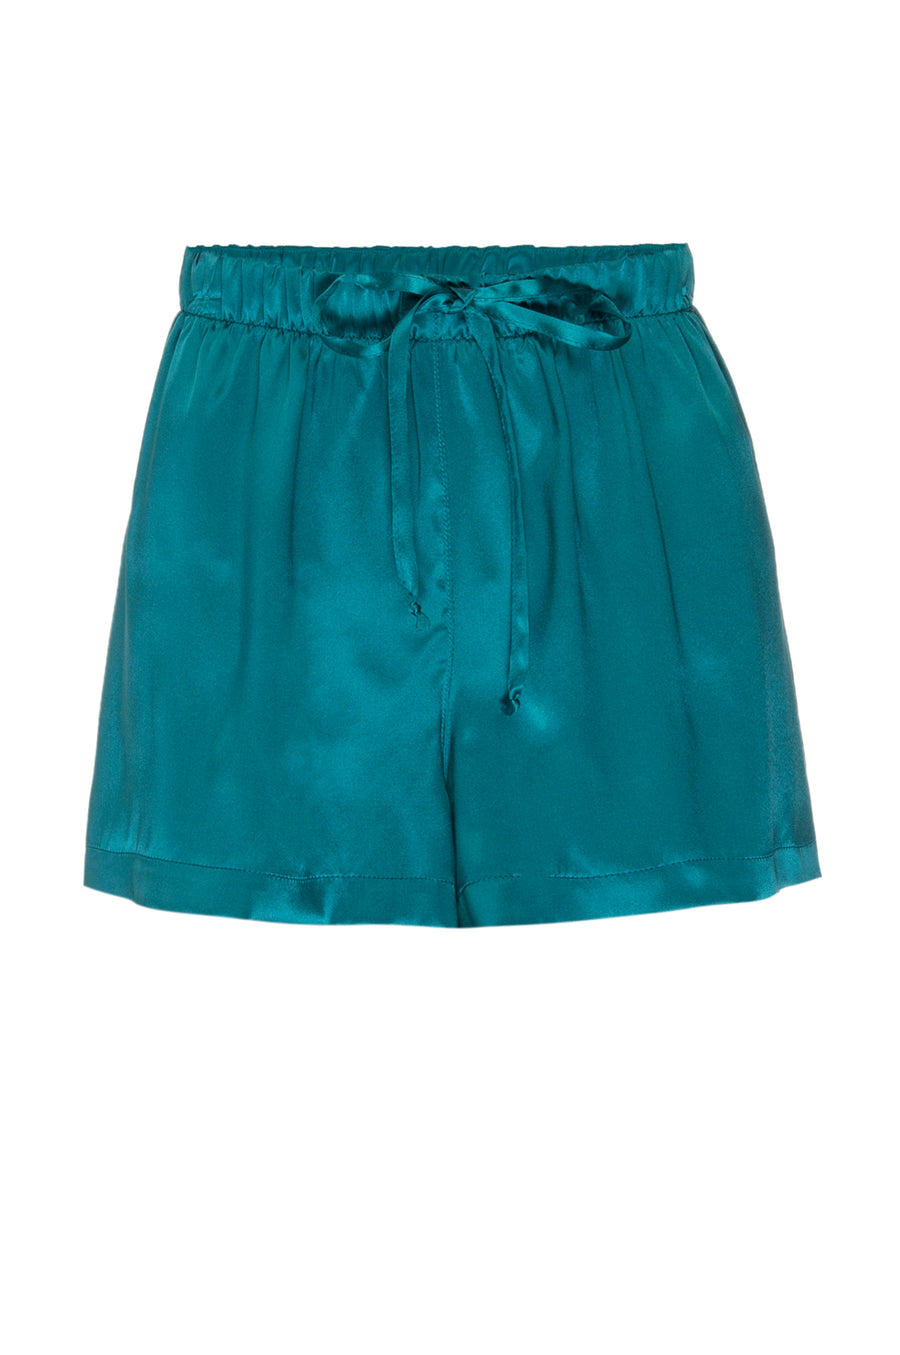 Silk Charmeuse PJ Shorts: Emerald